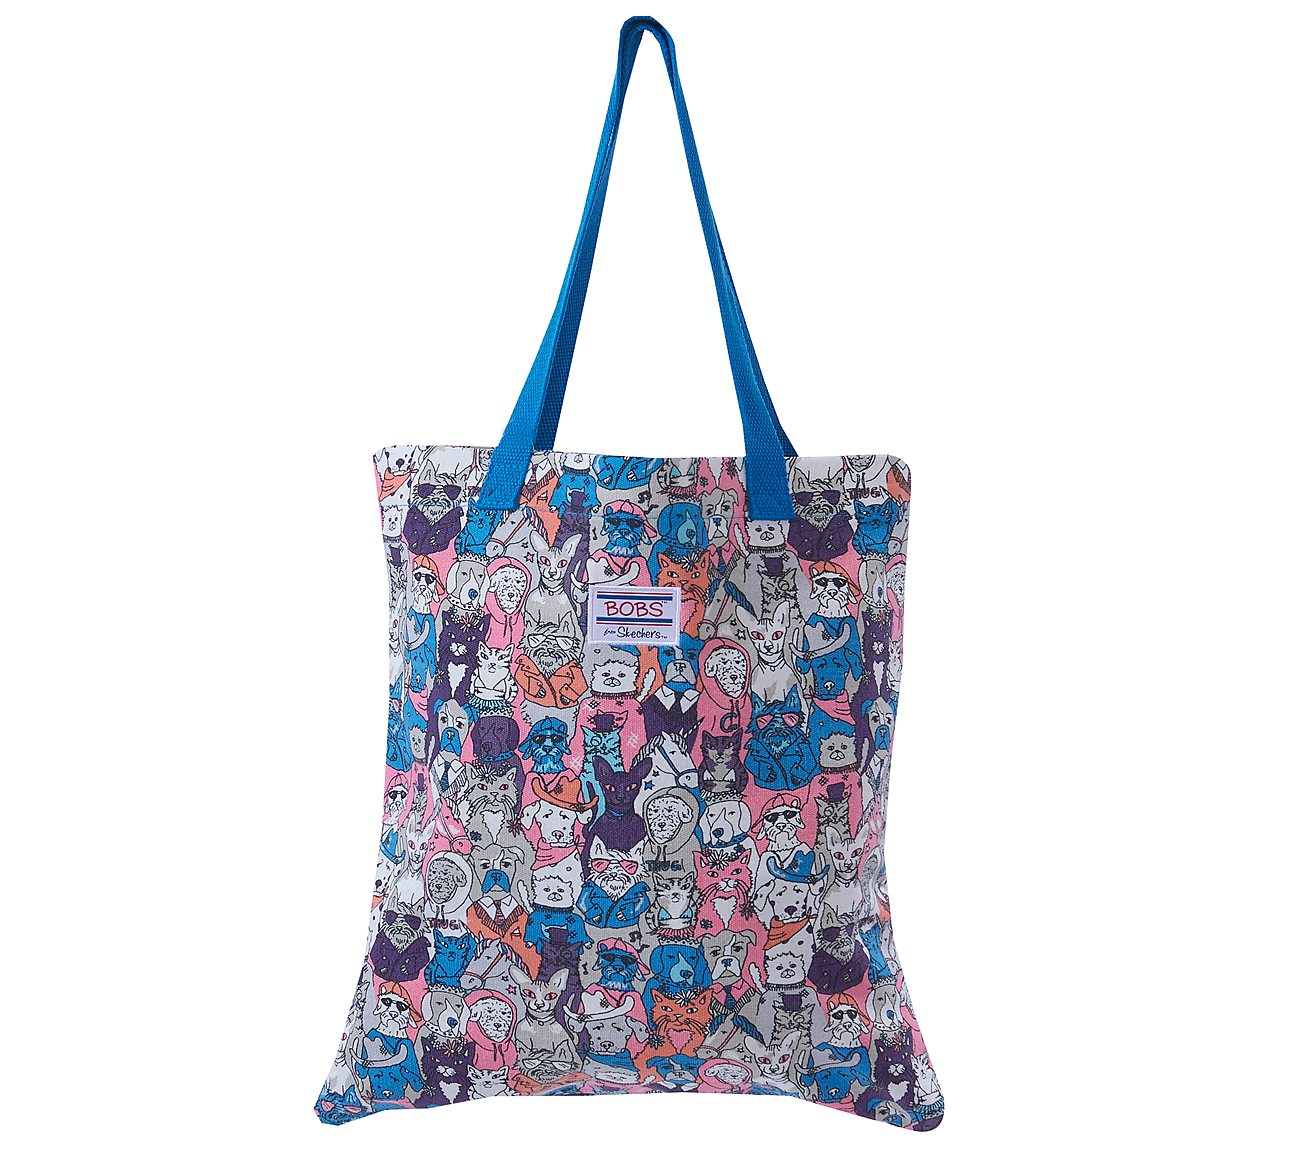 BOBS for Dogs Printed Tote Bag